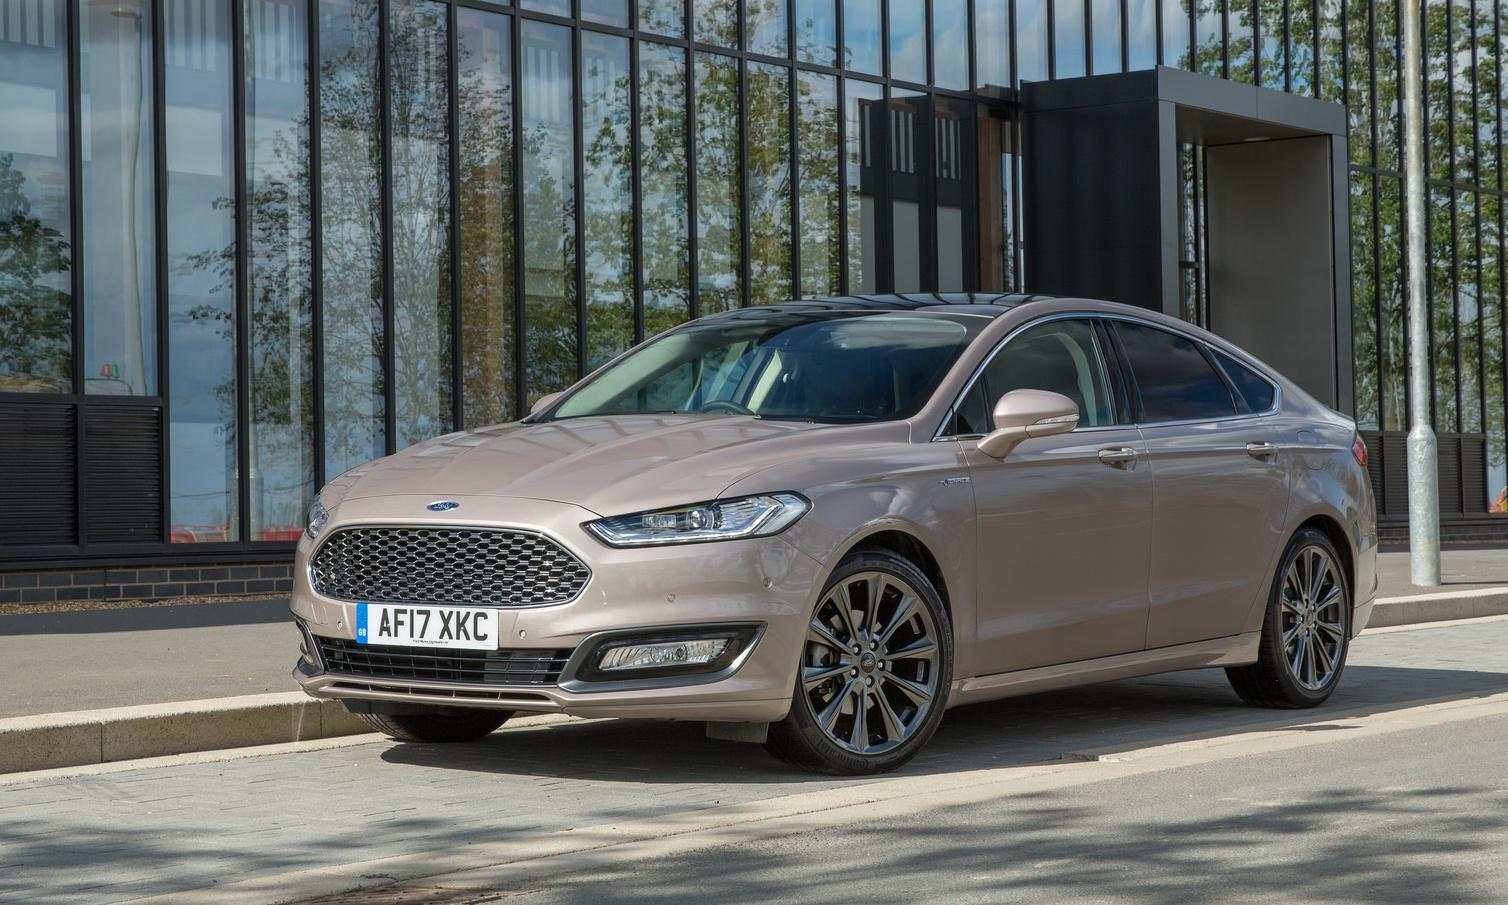 Ford Mondeo: 'Where is Mondeo Man when you need him?'